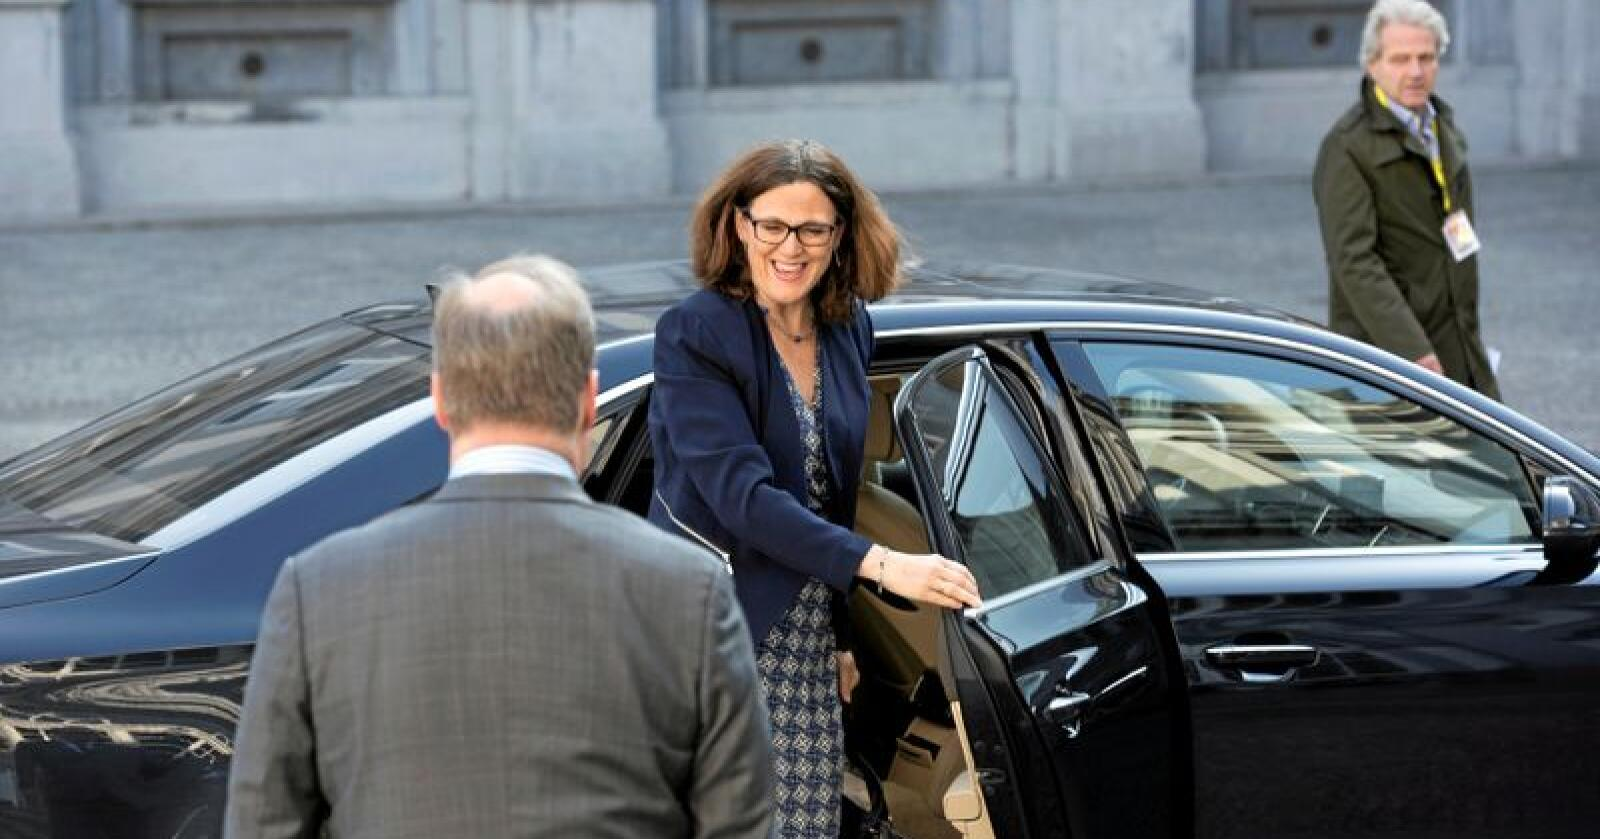 EUs handelskommisær Cecilia Malmström. Her på veg til møte i Alliance of Liberals and Democrats for Europe. Foto: ALDE Party / Flickr